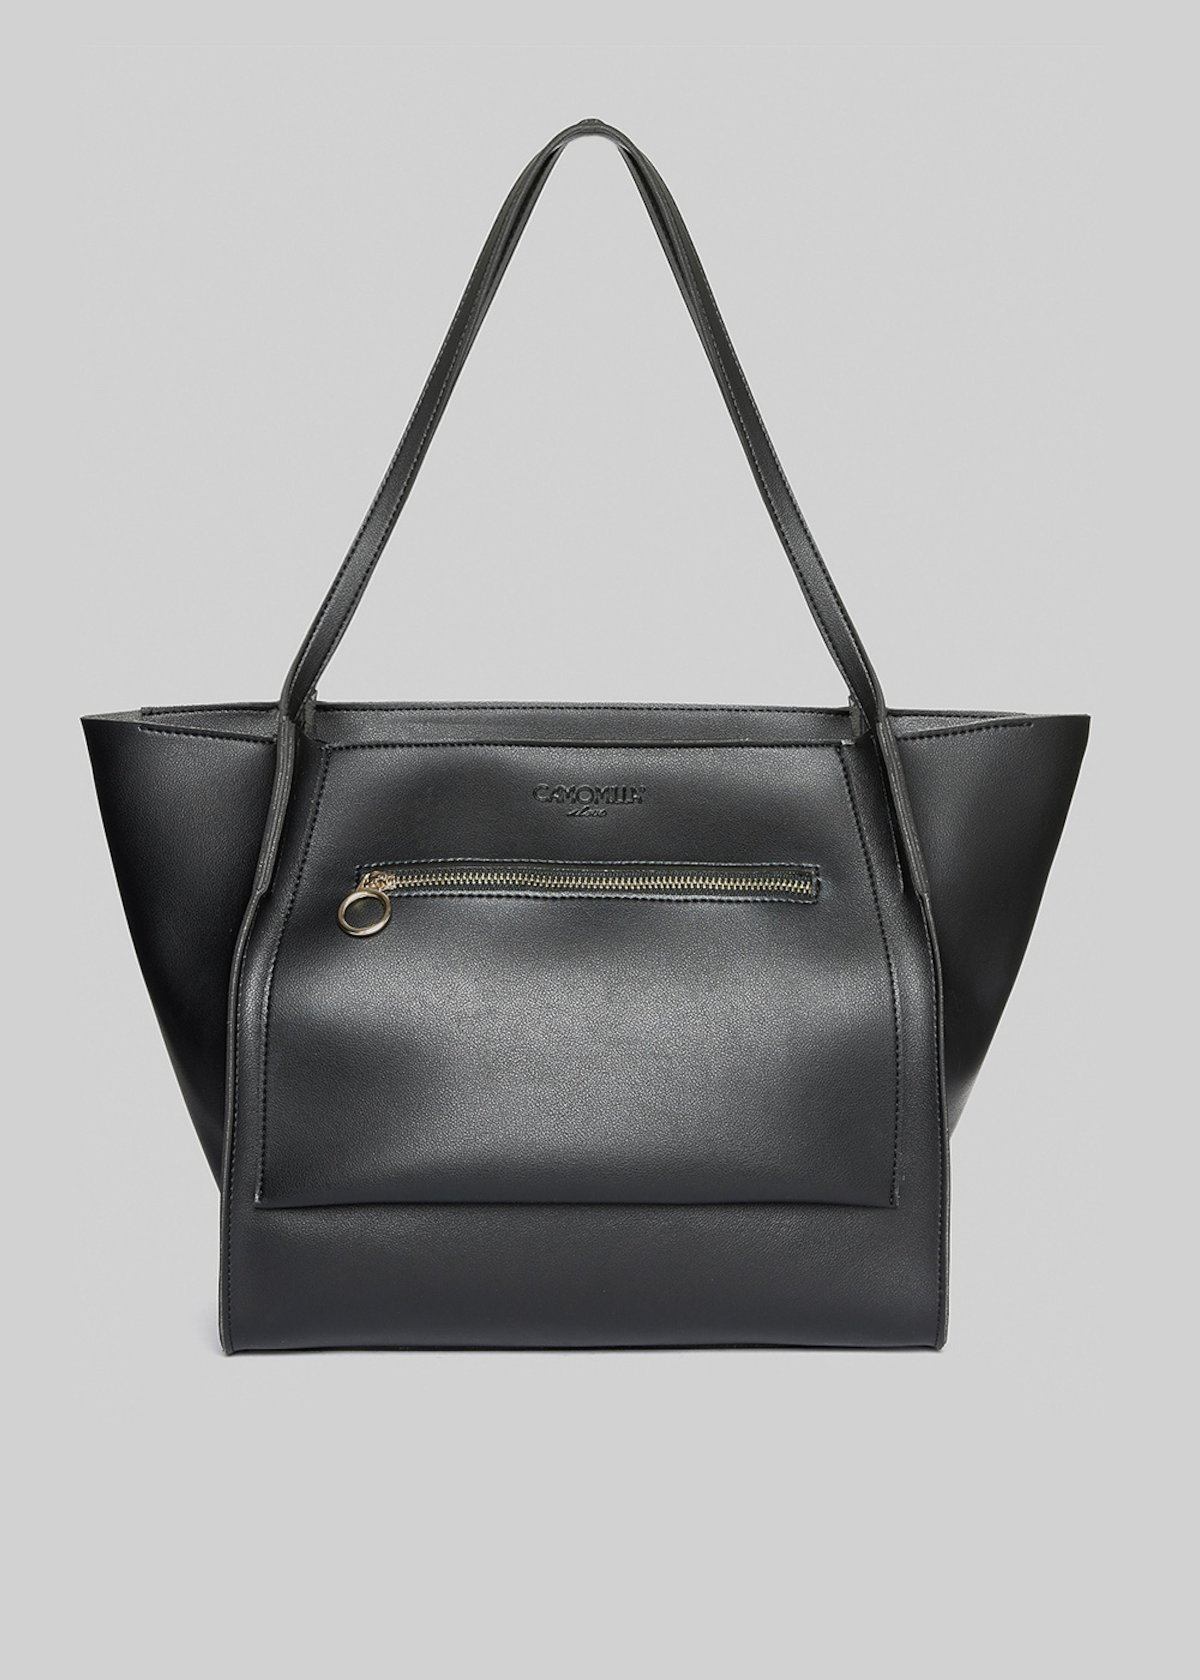 Shopping bag Bisi in ecopelle con pocket zip sul davanti - Black